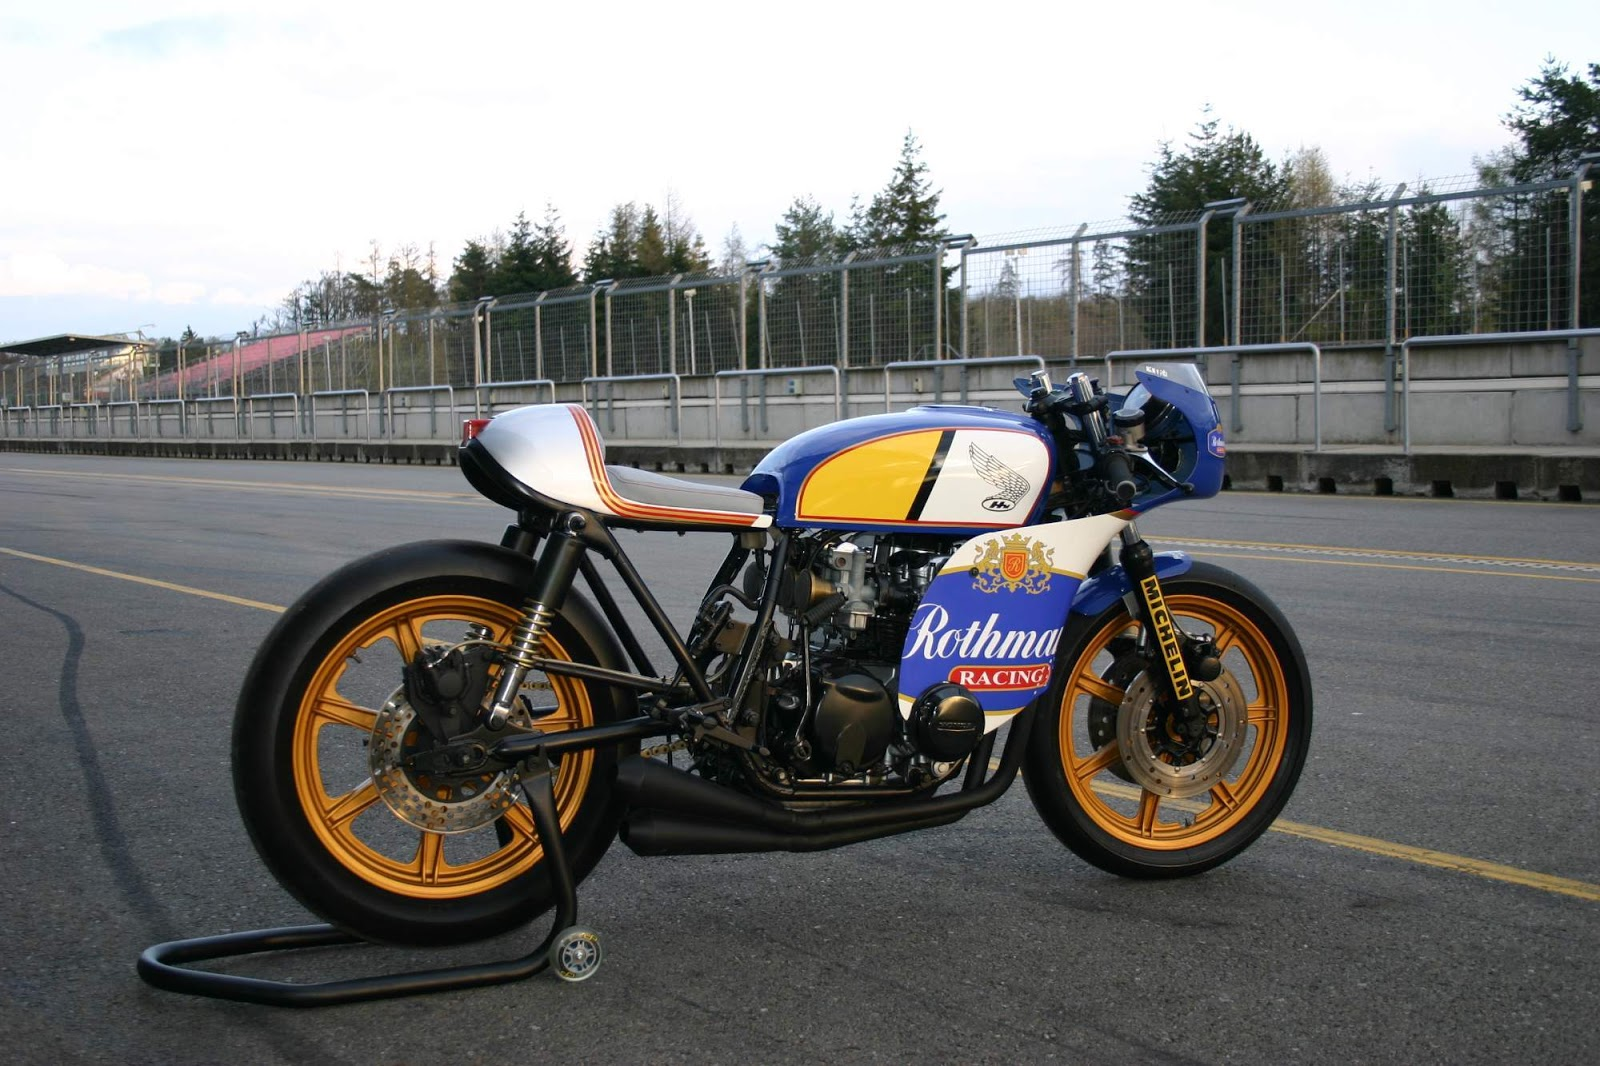 honda cb500 rothmans racing rocketgarage cafe racer magazine. Black Bedroom Furniture Sets. Home Design Ideas